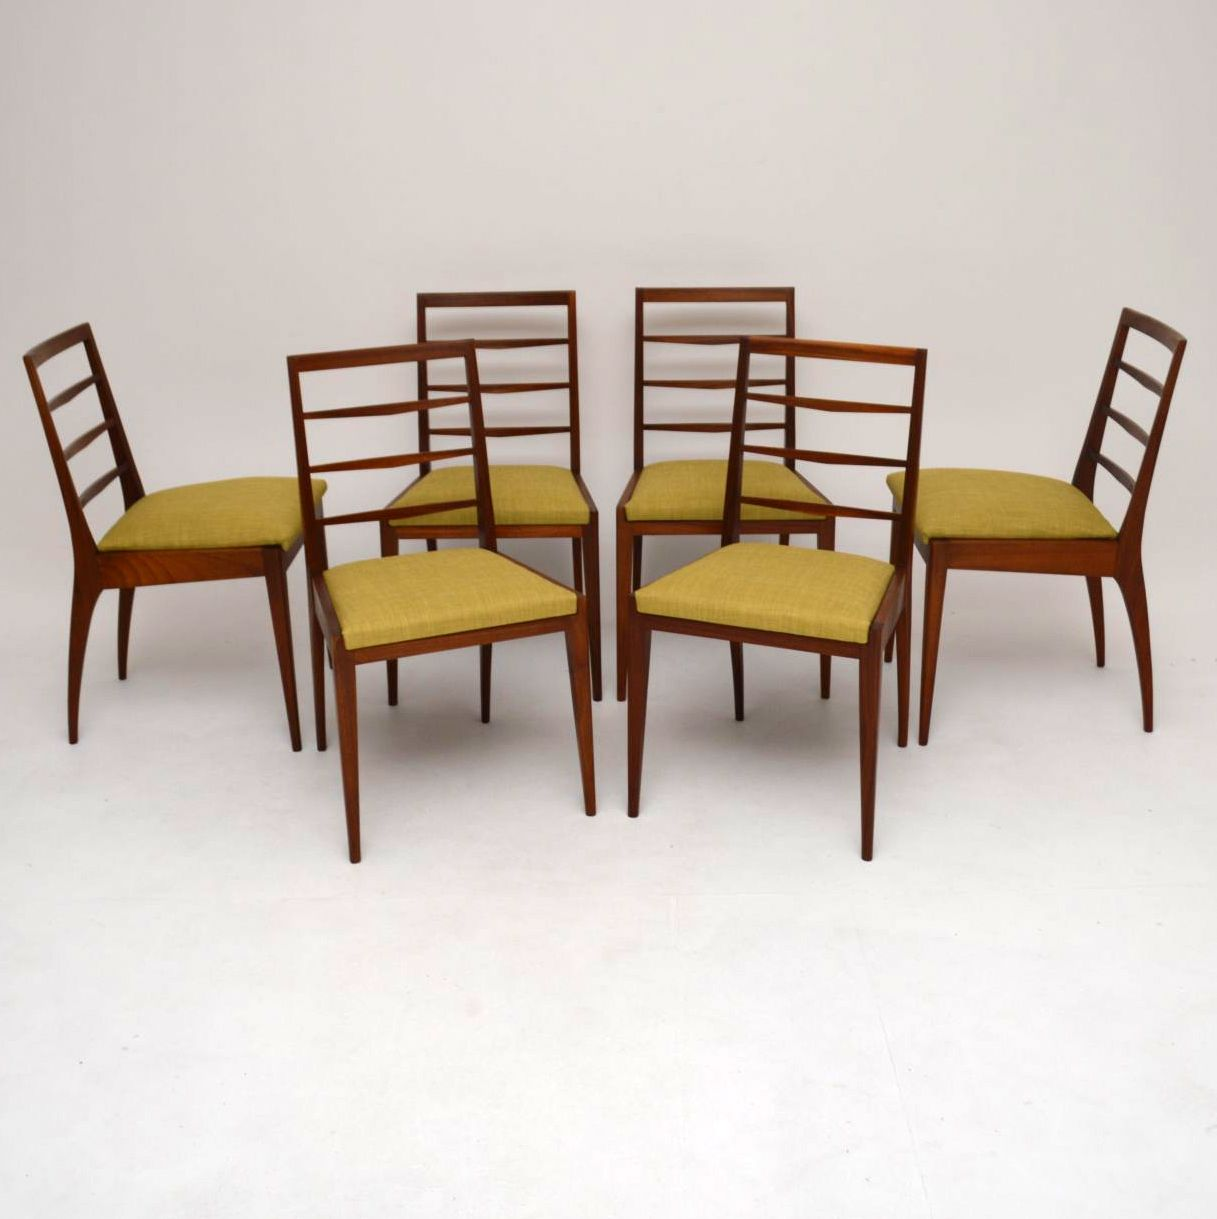 Set of 6 Retro Teak Dining Chairs by McIntosh Vintage 1960's